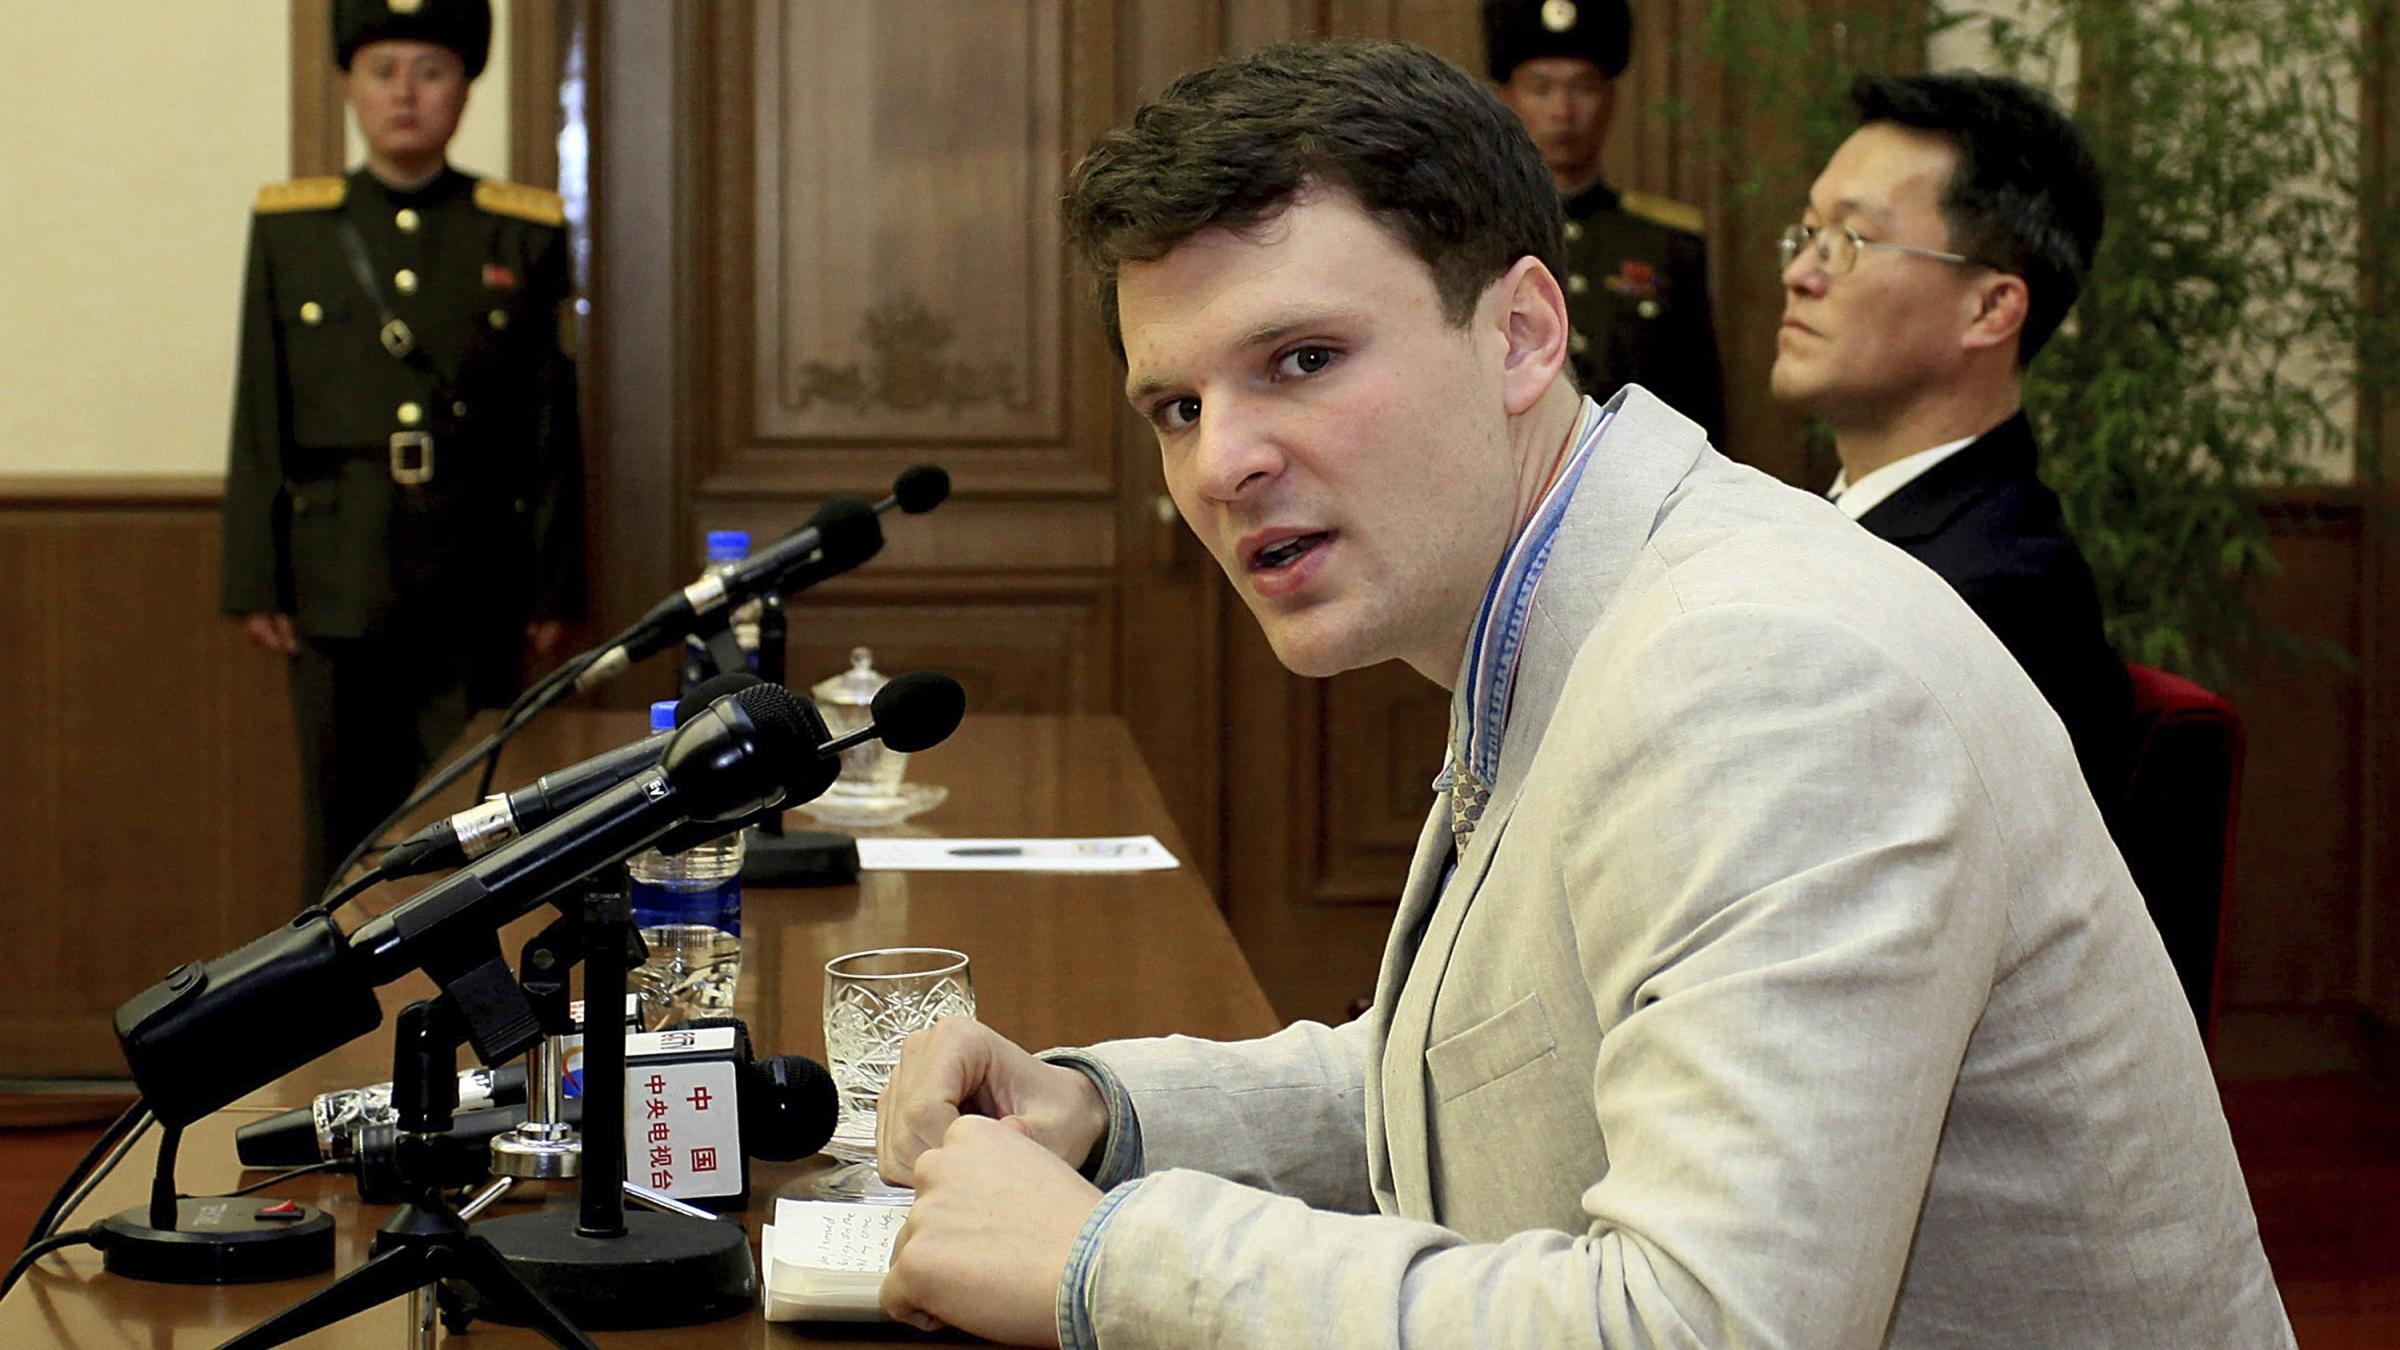 North Korea releases US citizen Otto Warmbier